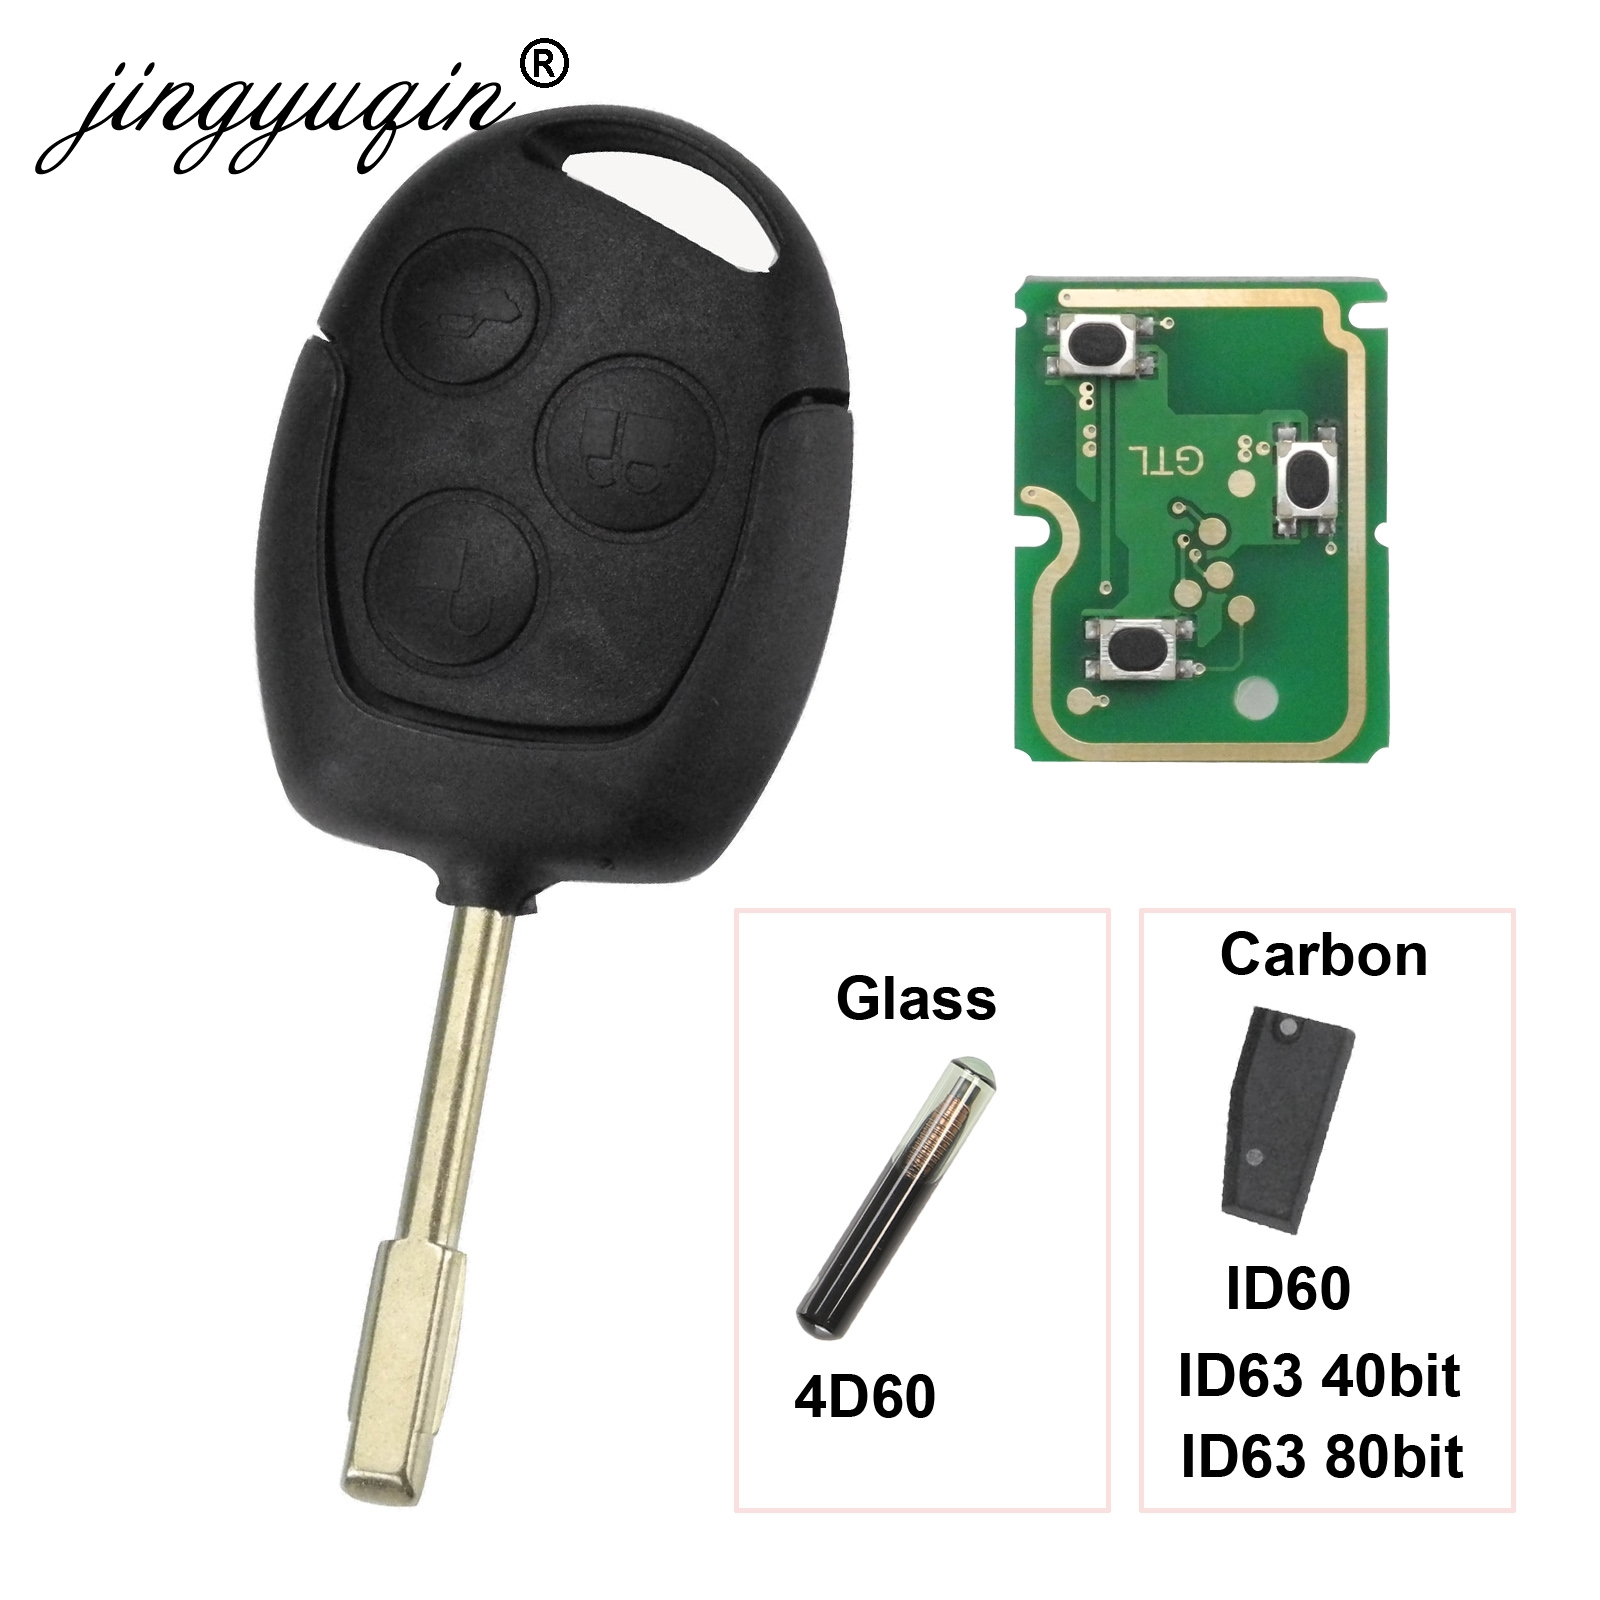 jingyuqin 3 Buttons Remote Key Fob 315Mhz 433MHz 4D60 ID63 Chip For Ford Mondeo Focus Fusion Fiesta Galaxy Transit Full Car Key